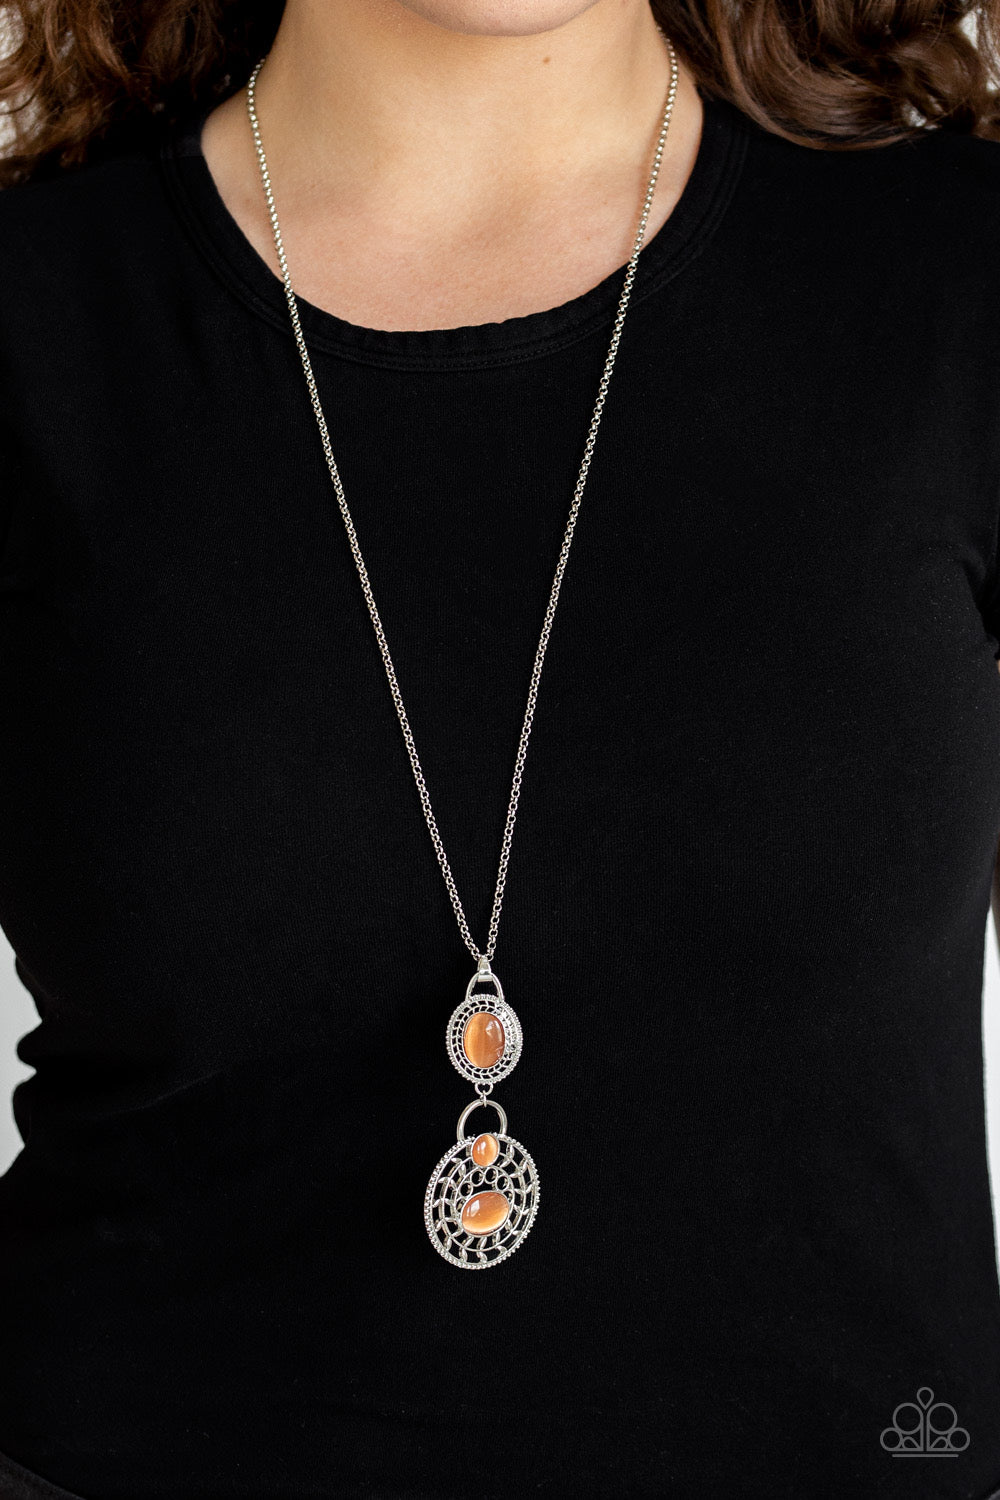 Paparazzi Hook, VINE, and Sinker - Orange Necklace